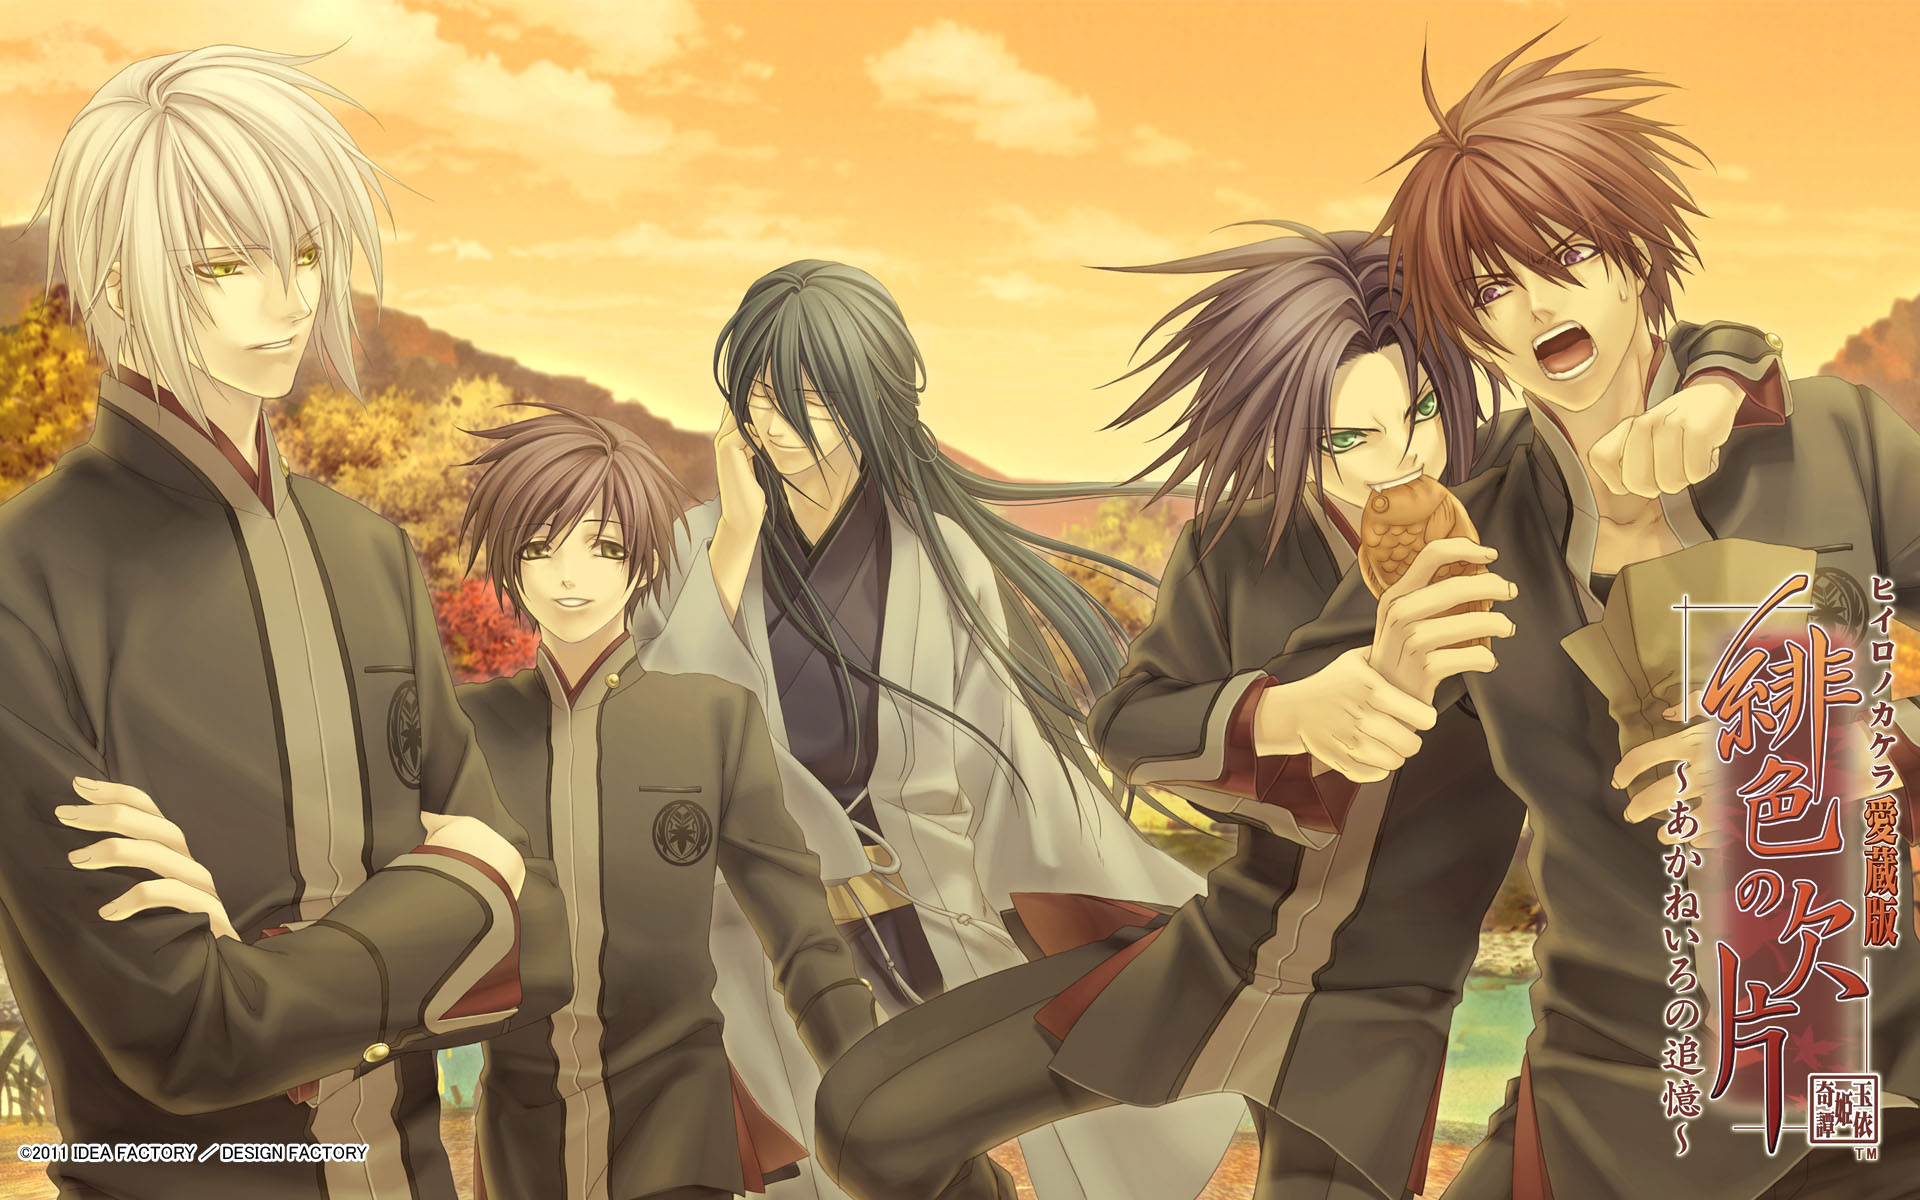 Hiiro no Kakera (Scarlet Fragments) Wallpaper #908588 ...